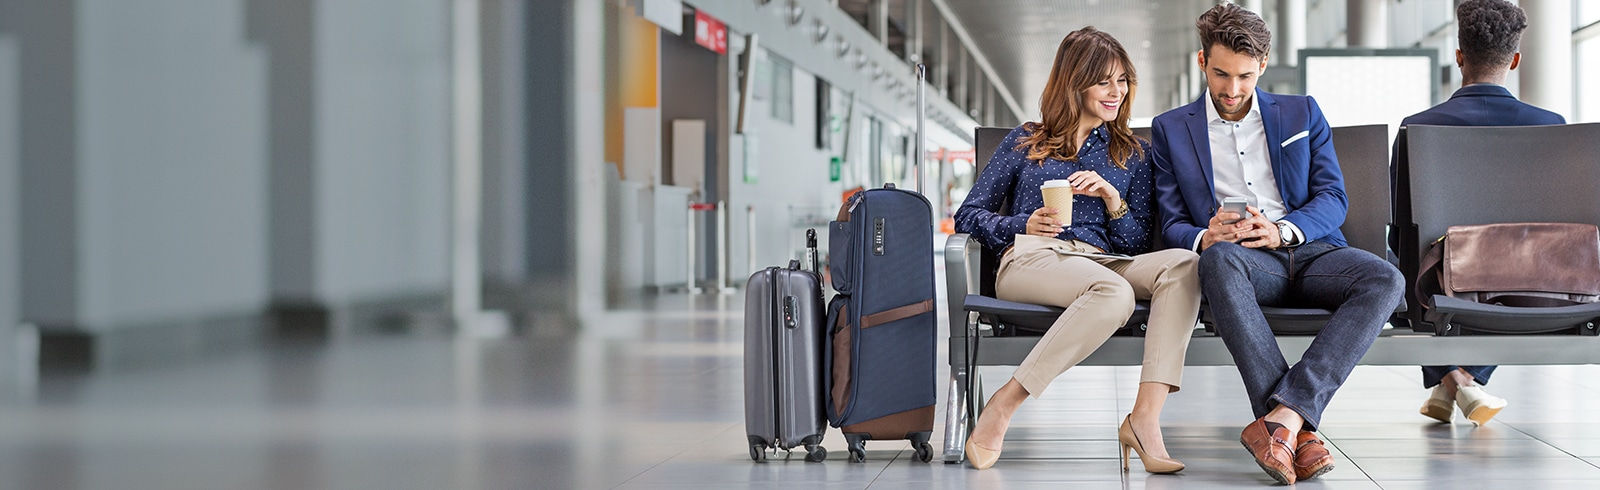 Airport lounges masthead istock